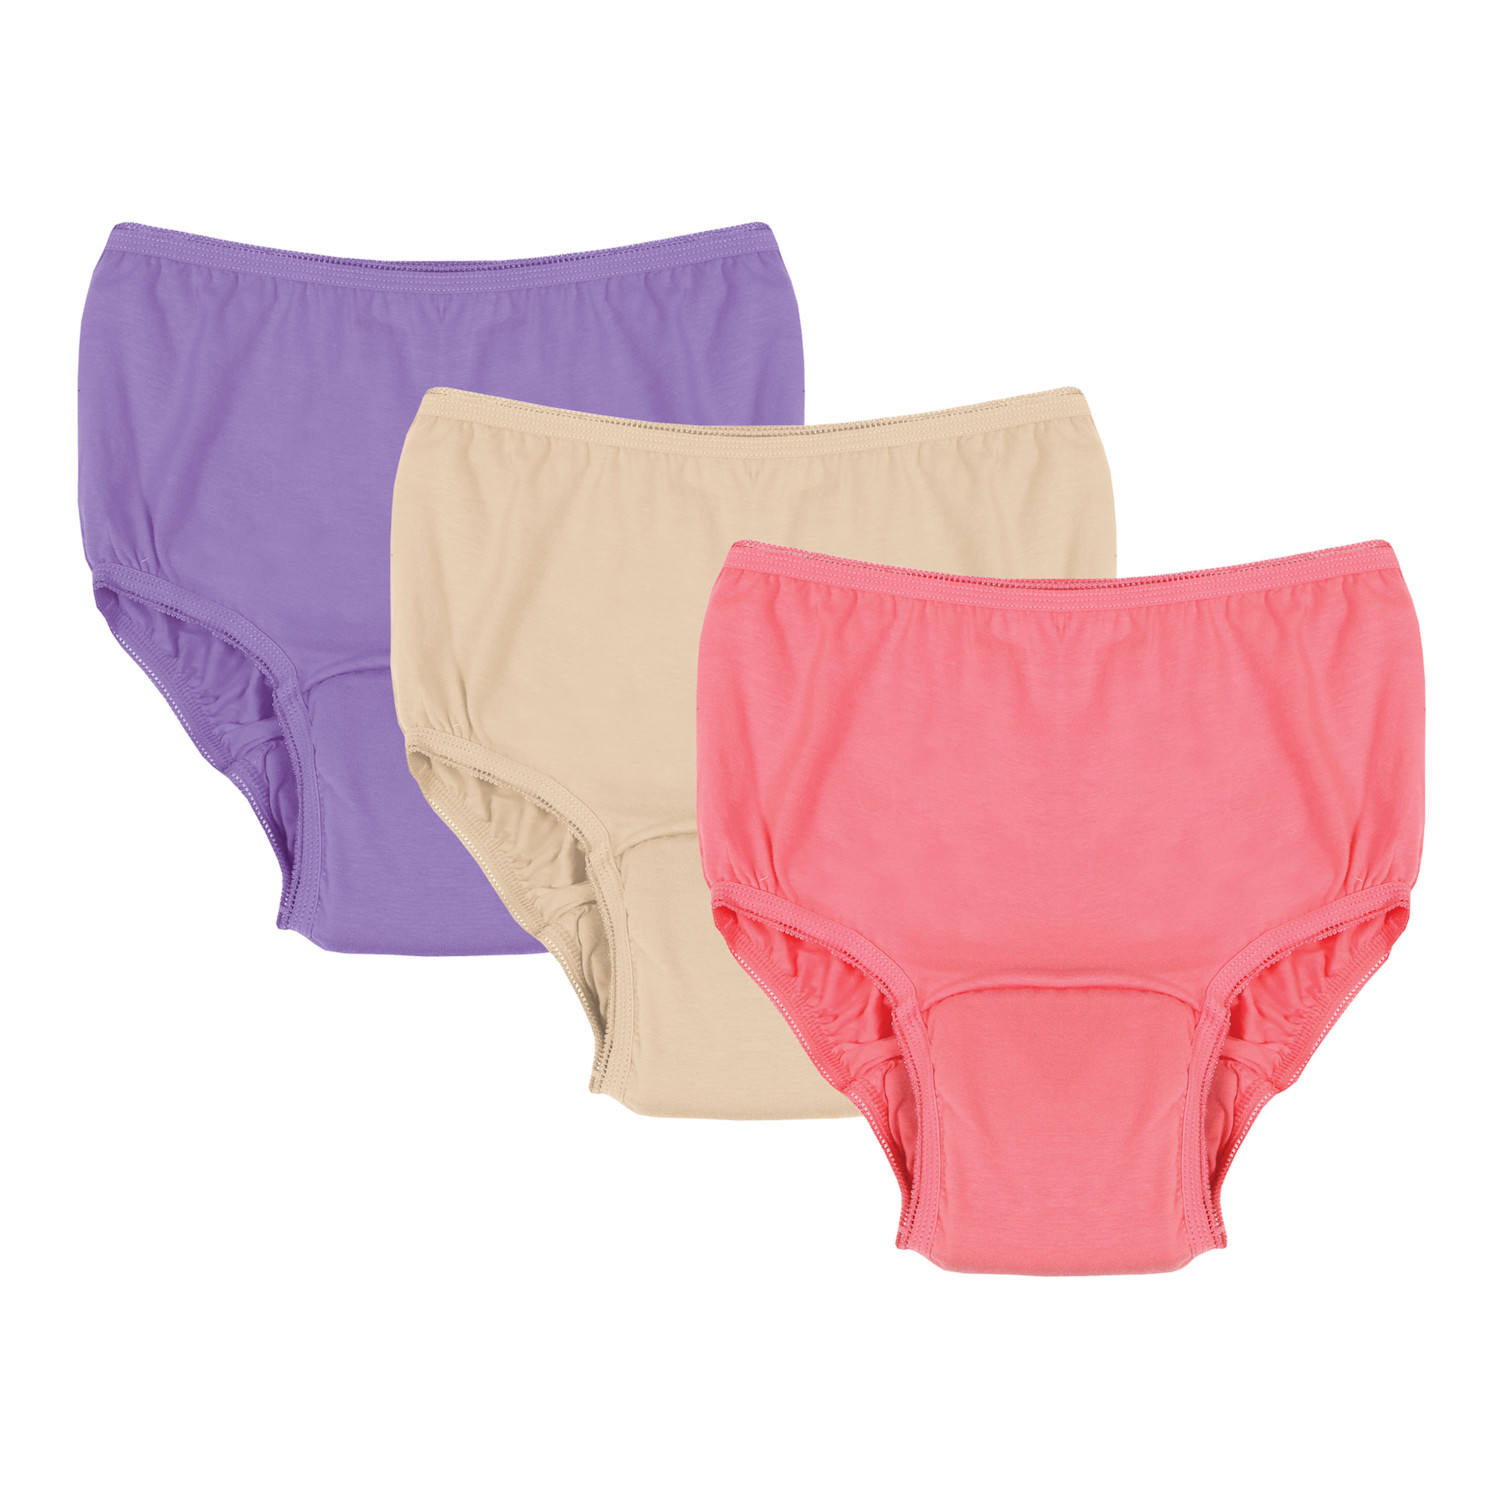 Women's Adult Incontinence Panties - Assorted Colors - 20 Oz. Pad - 3 Pack